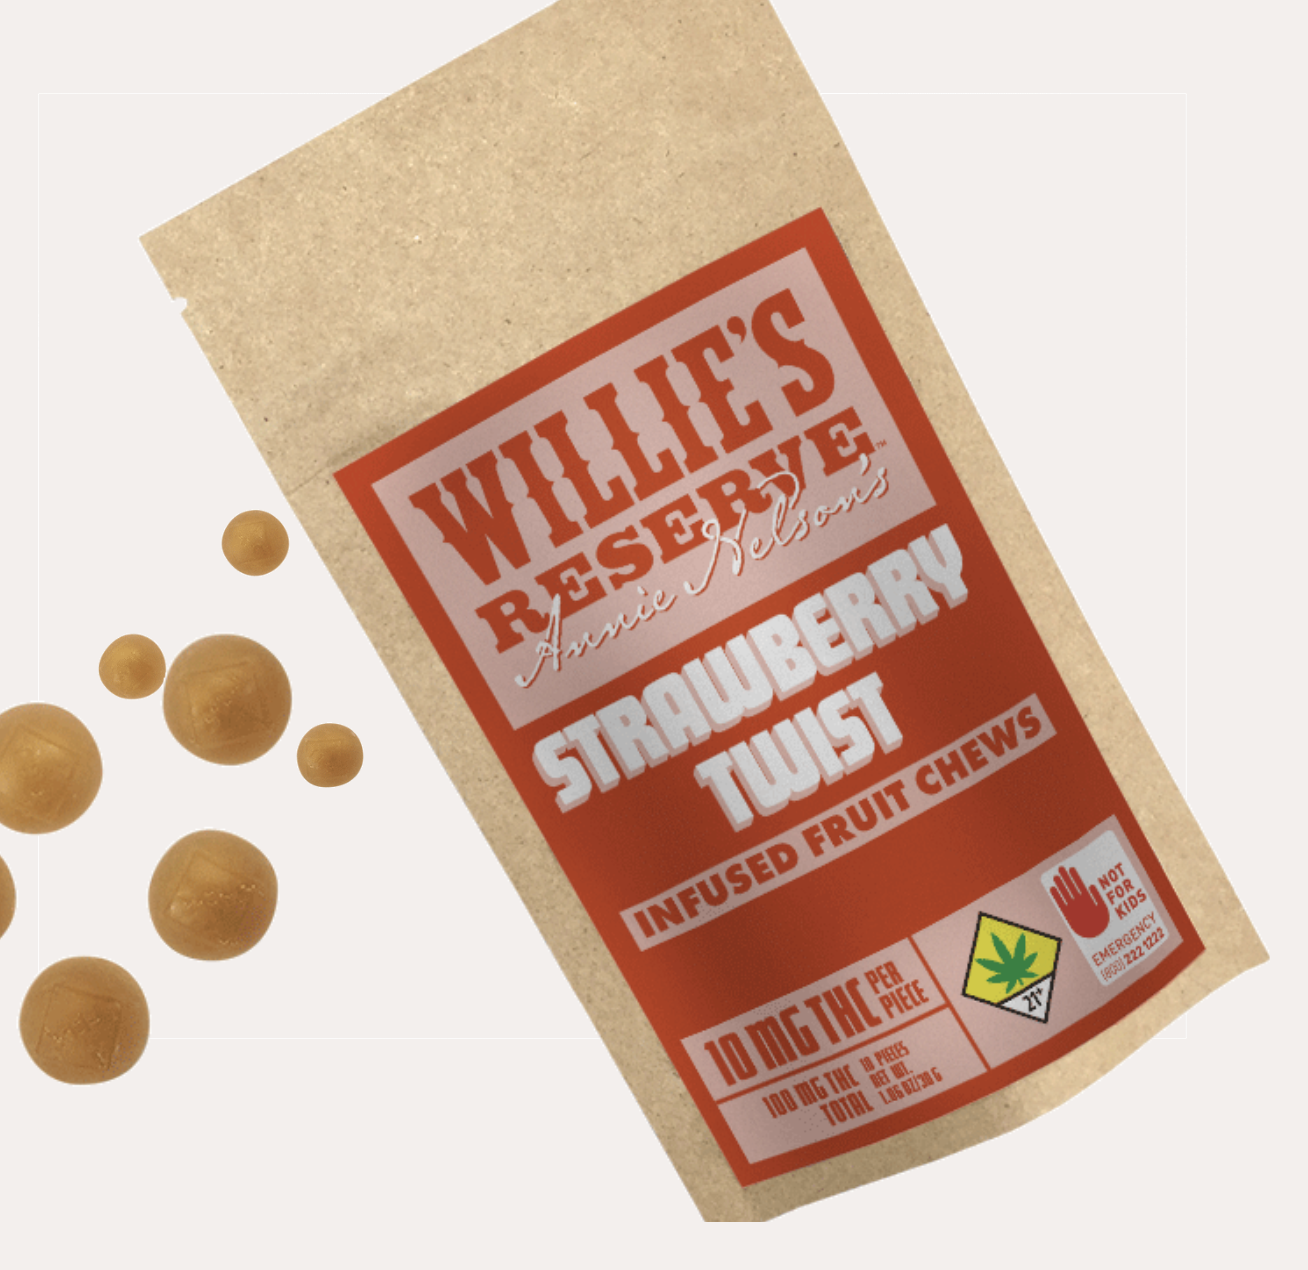 Willie's Reserve: Annie's Infused Fruit Chews